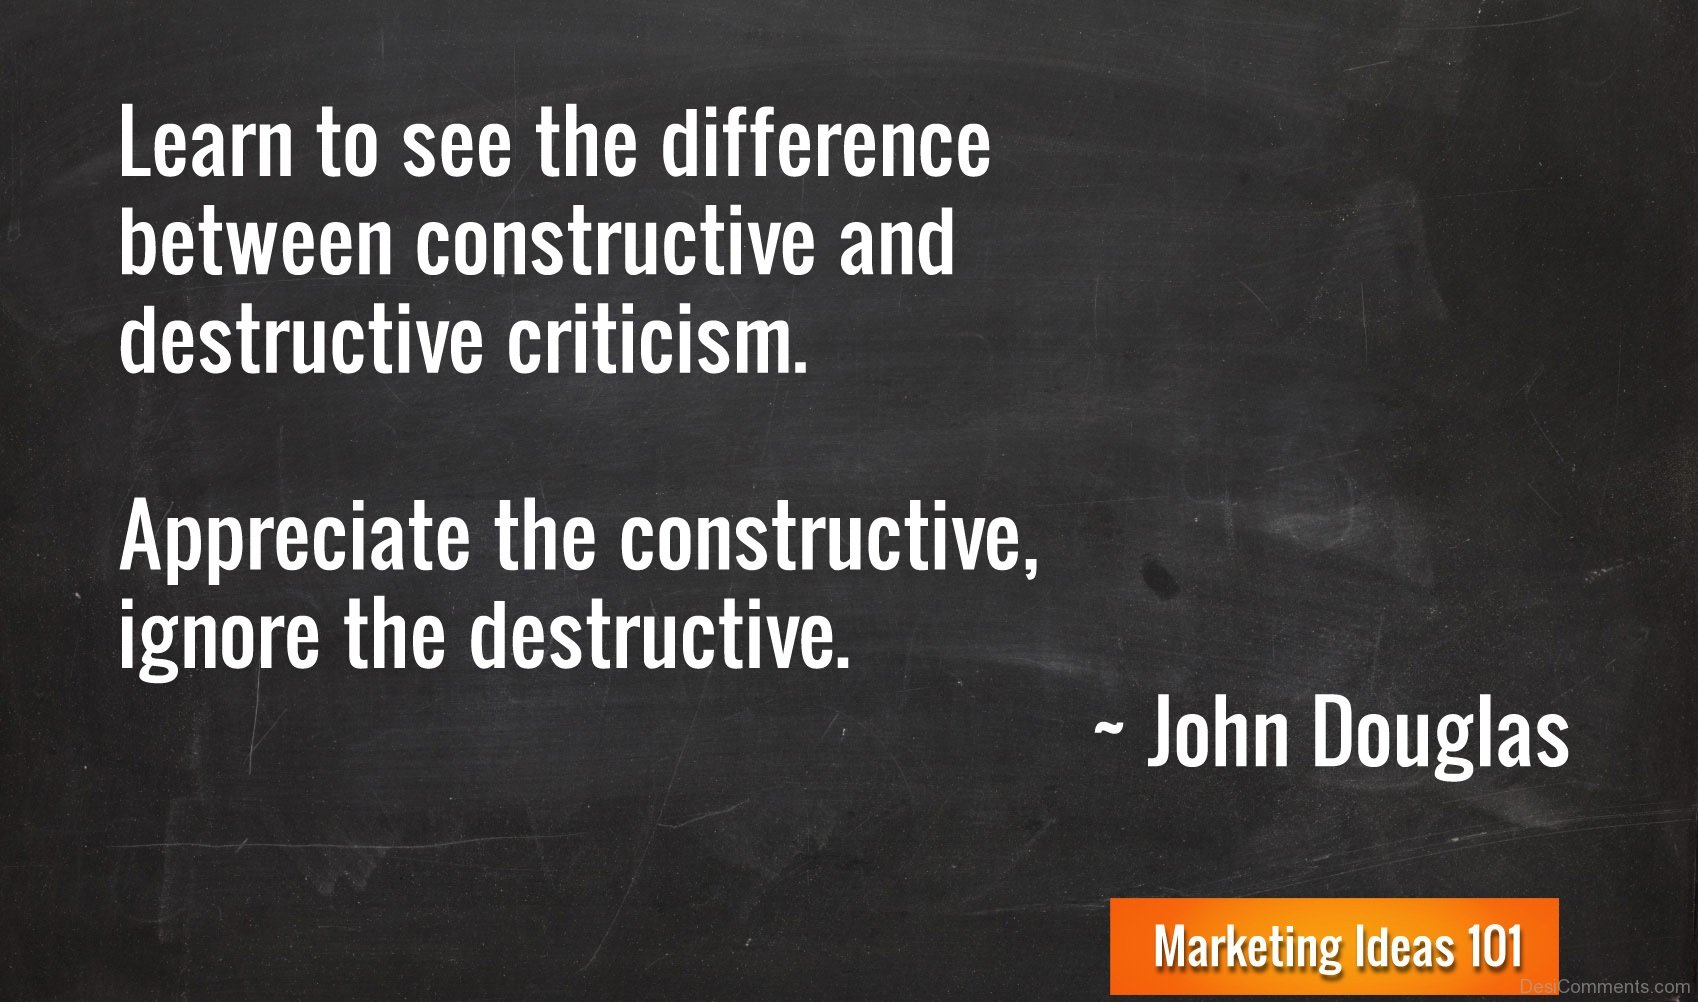 what is the difference between constructive and destructive criticism